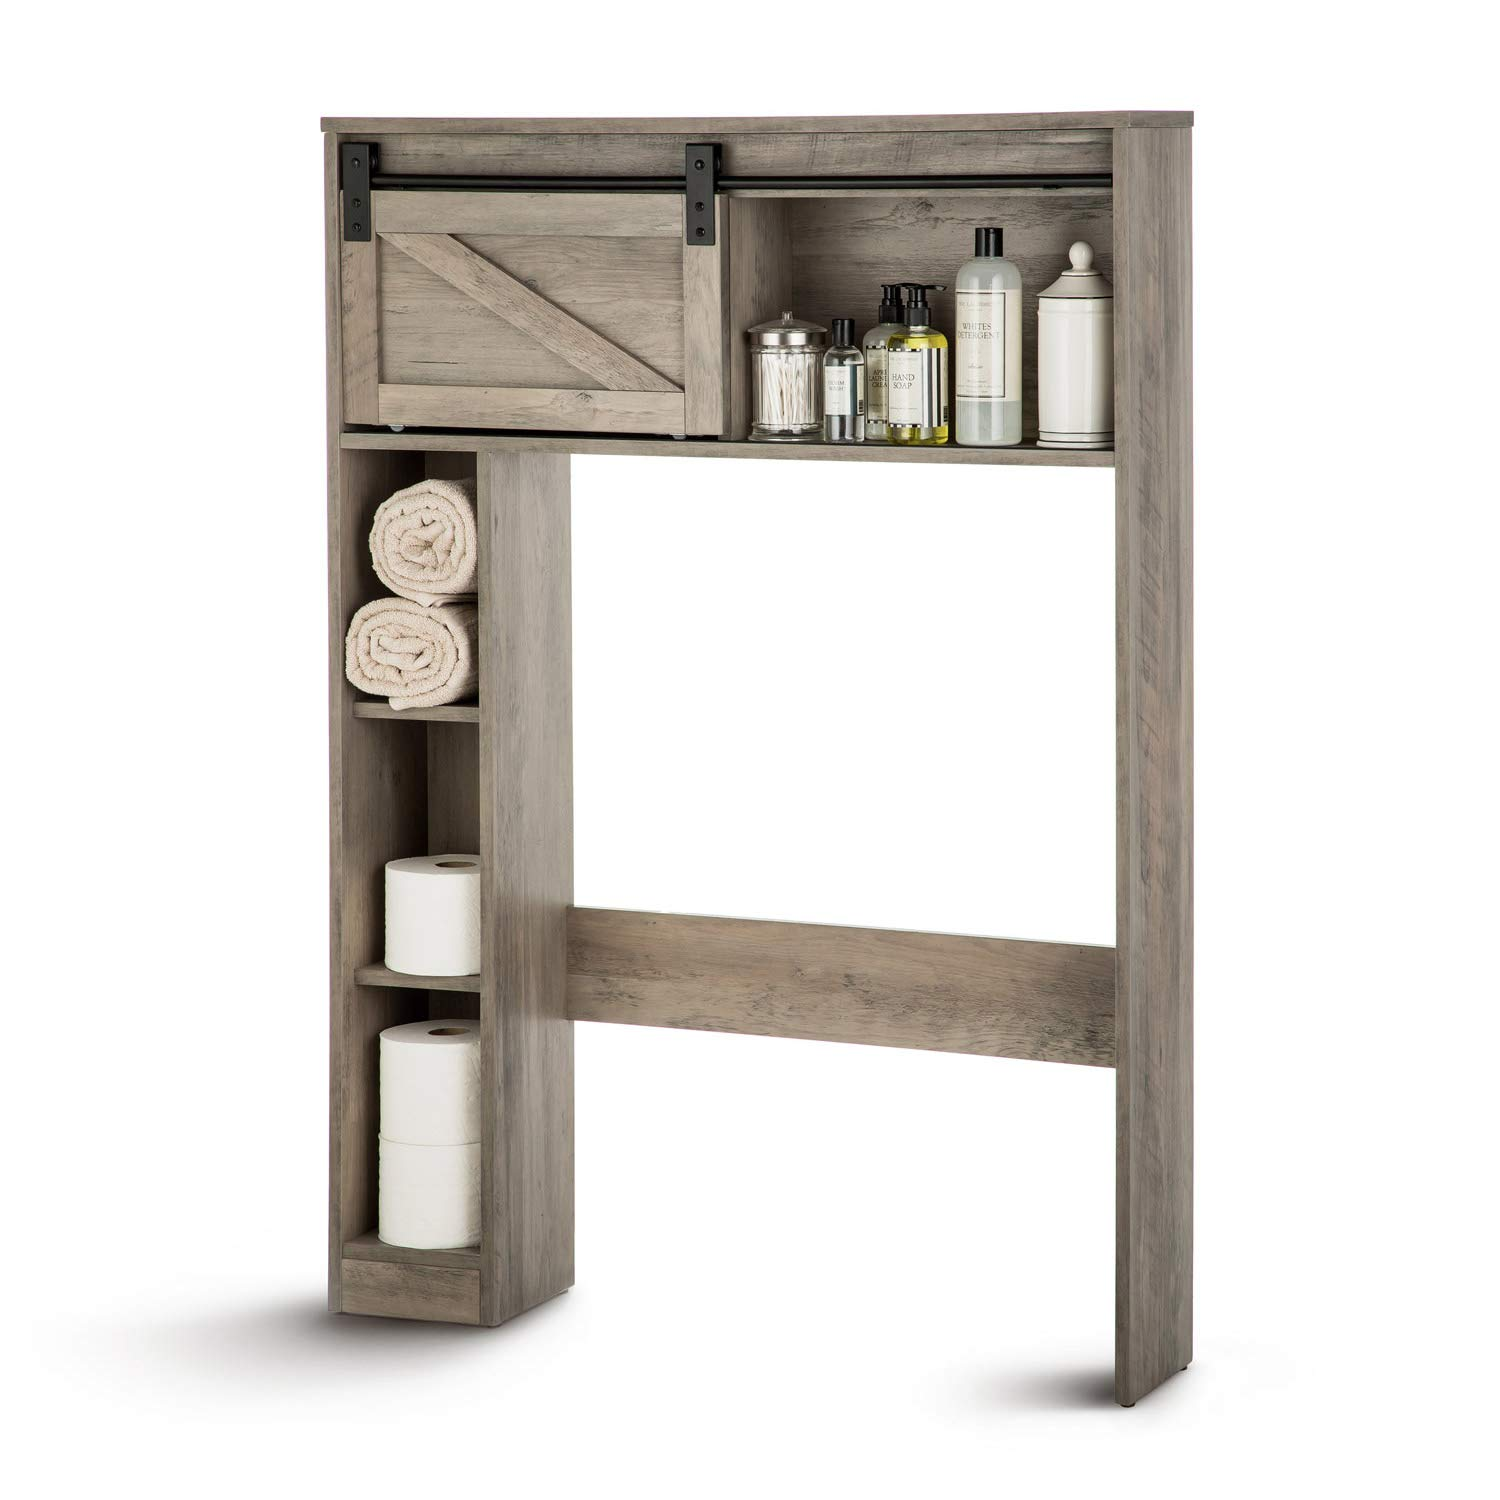 Landia Home Over the Toilet Storage Shelving - Bathroom Shelf and Cabinet with Sliding Barn Door